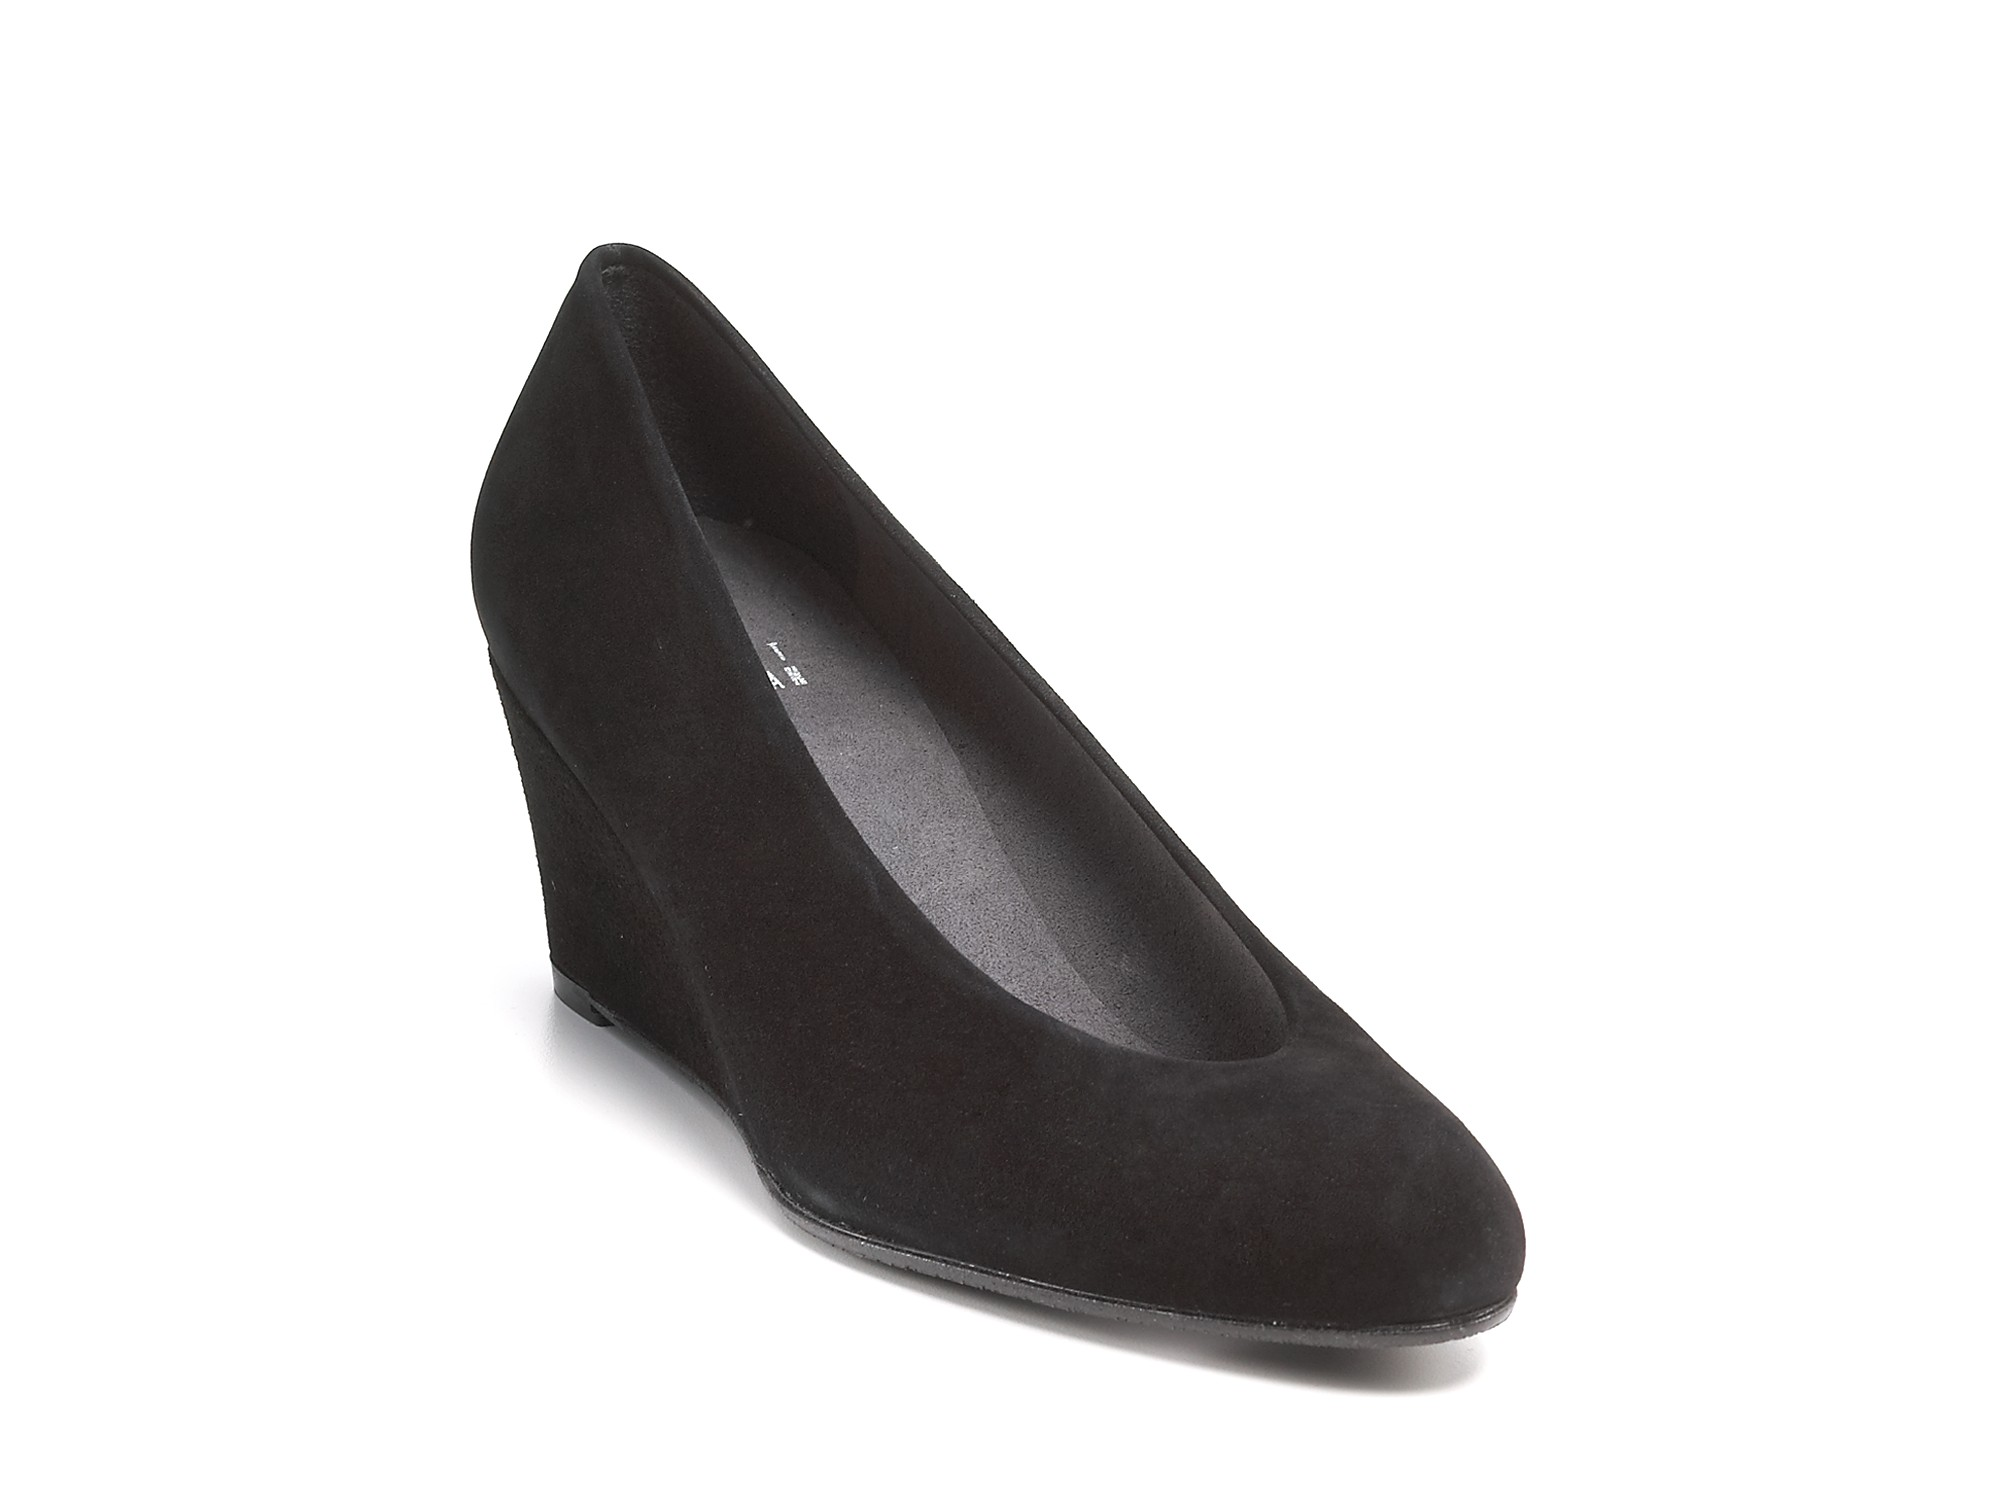 266c5a0b34ce9 Stuart Weitzman Ambient Wedge Pumps in Black - Lyst